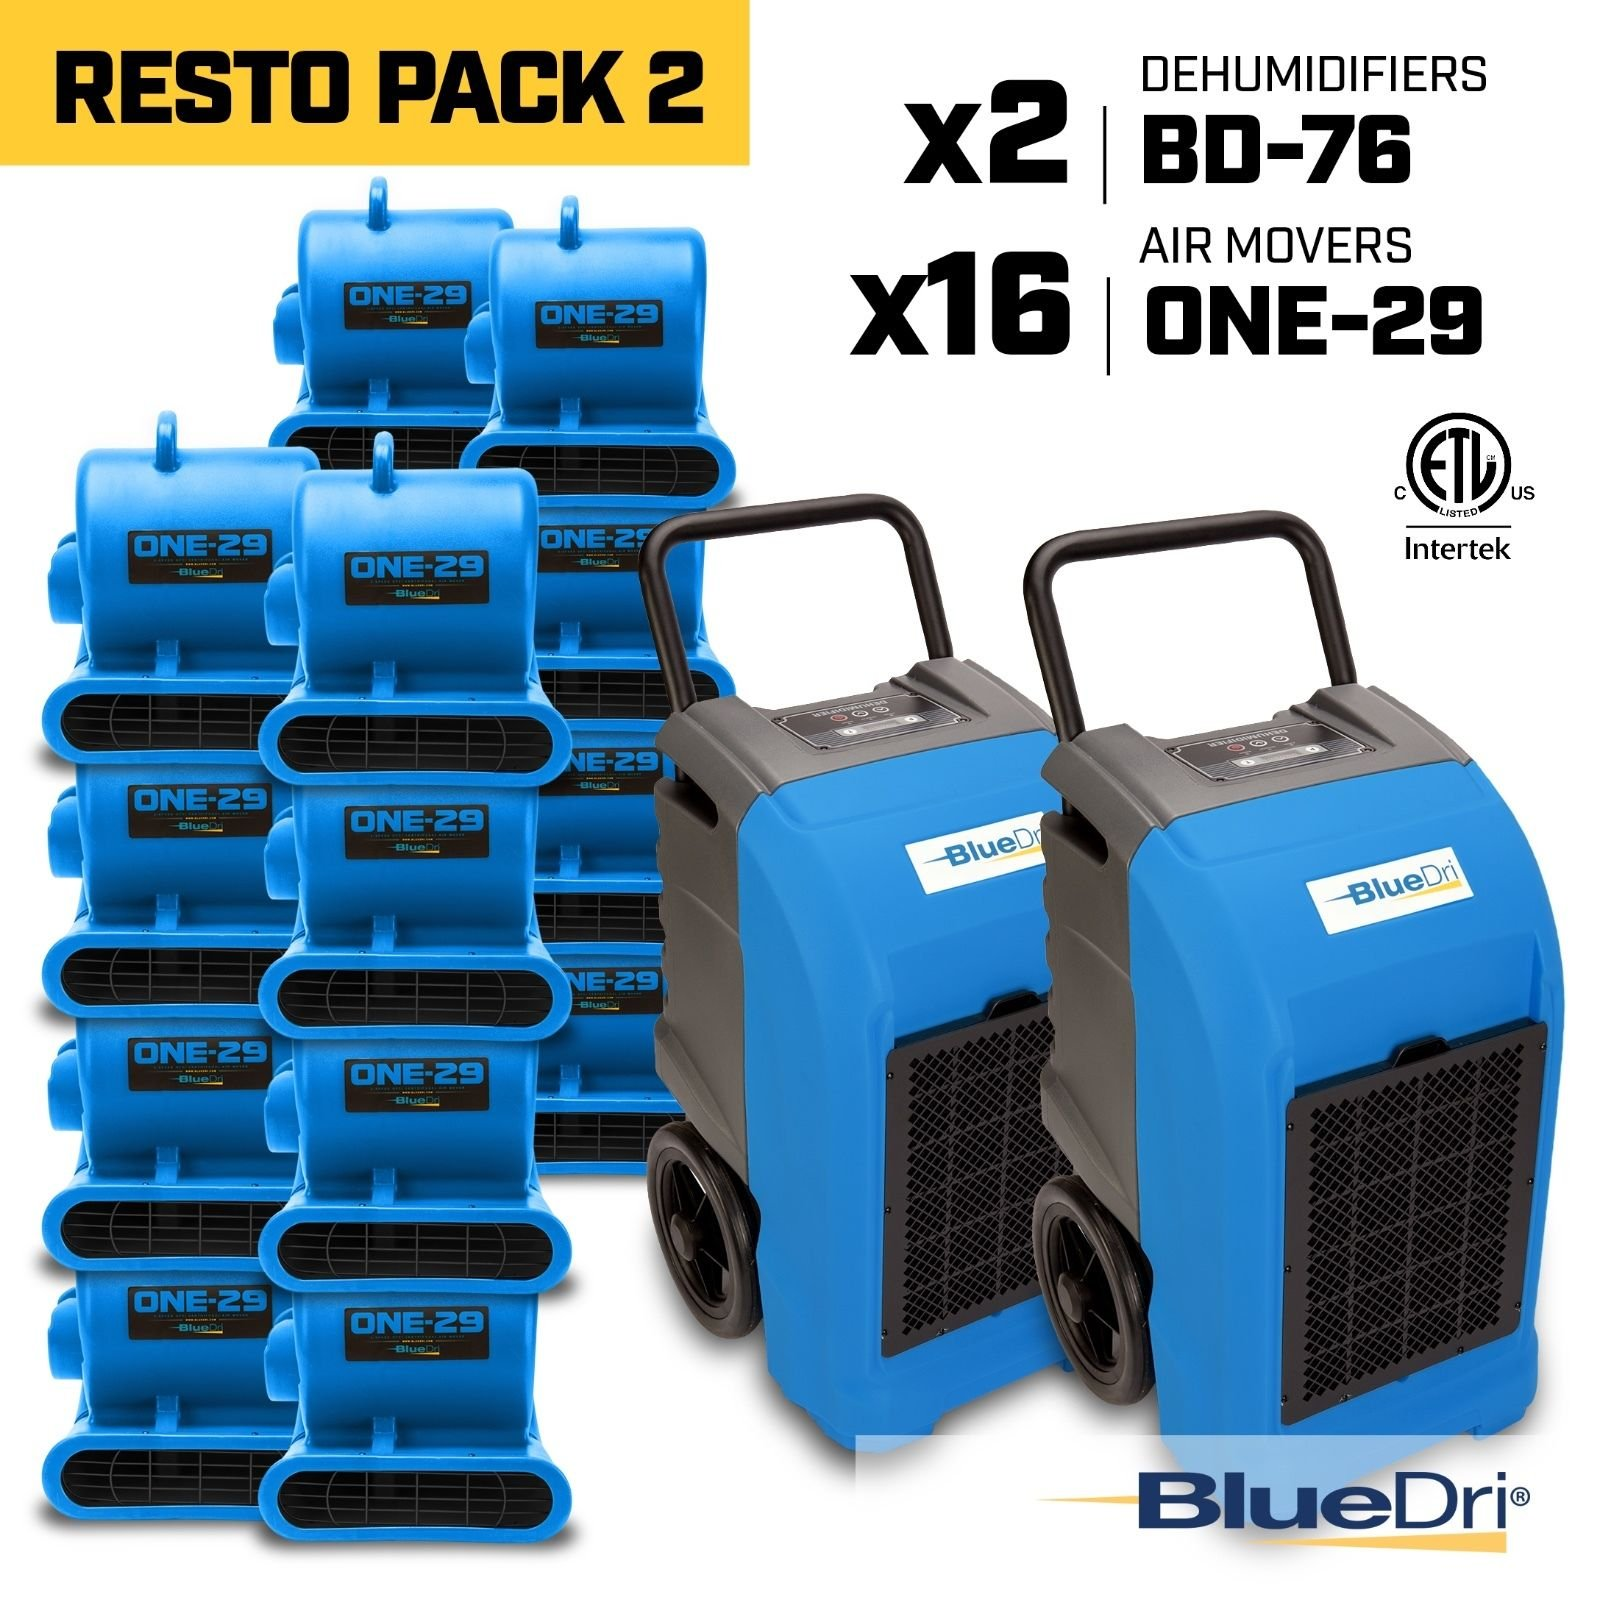 BlueDri Resto Pack 2, 16x One-29 Air Movers Carpet Dryer Blower Floor Fan & 2x BD-76 Pint Commercial Dehumidifier, Blue